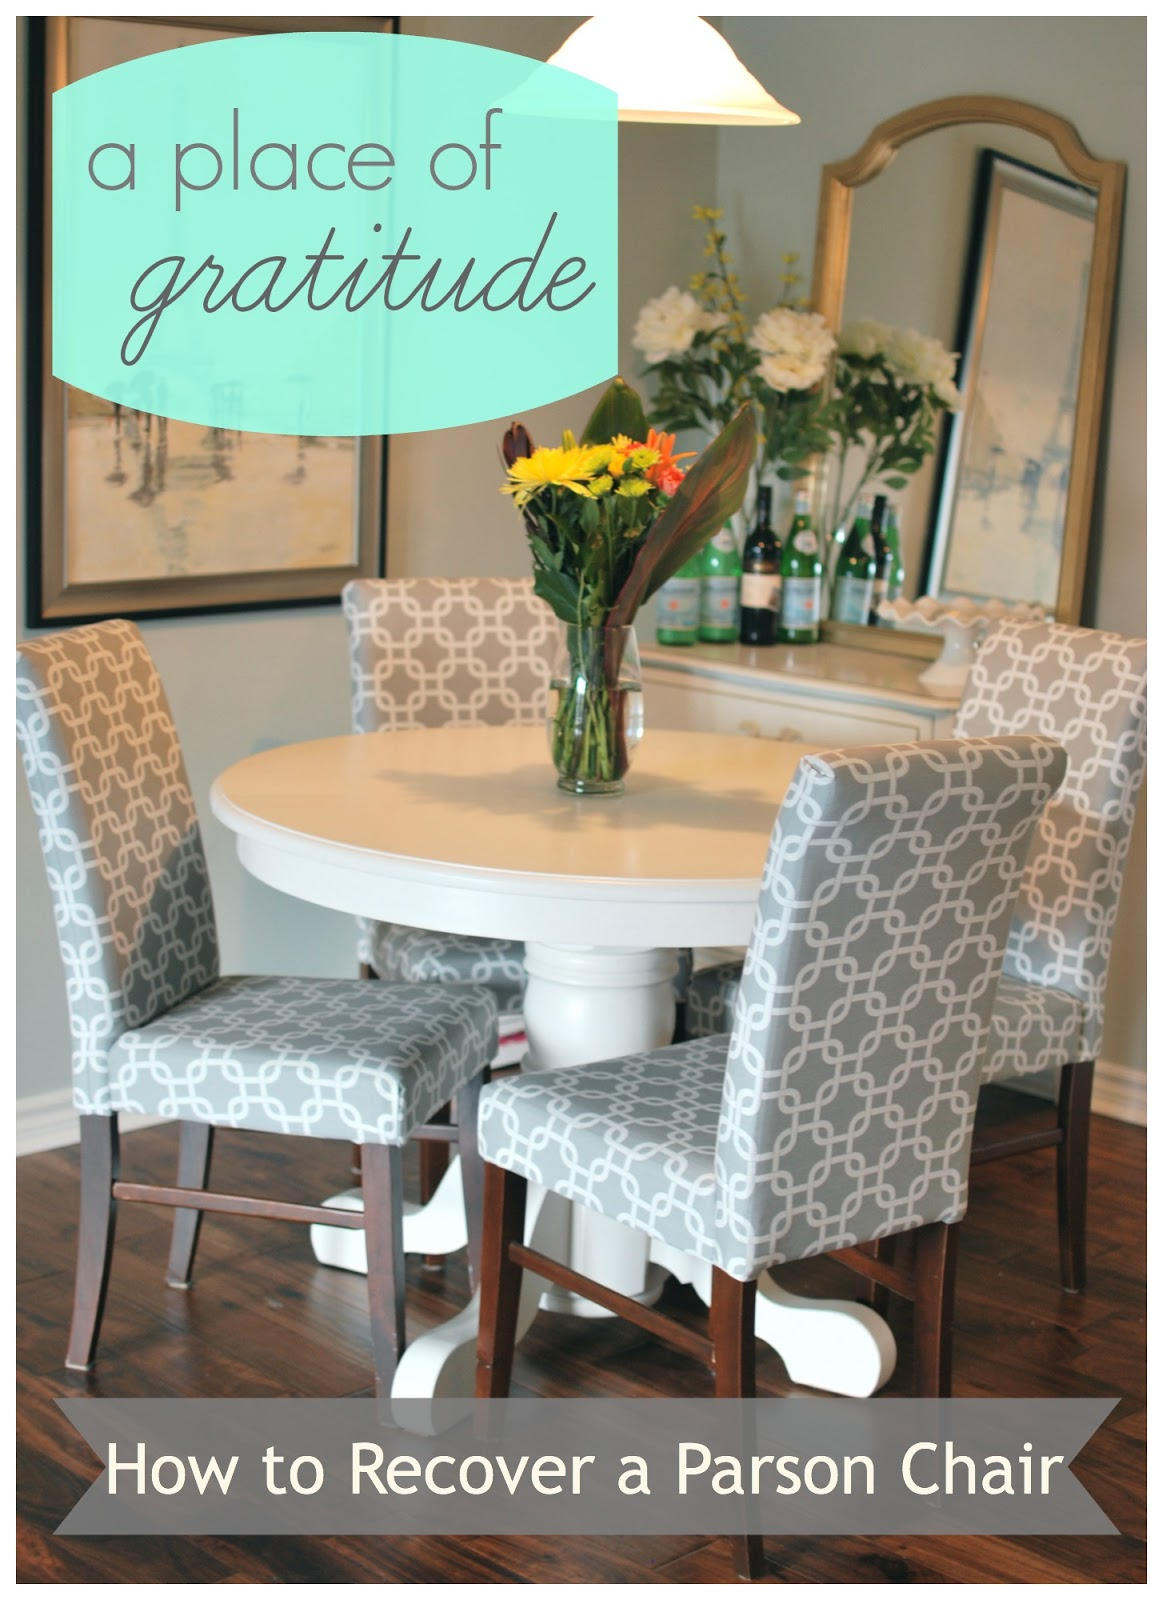 . a place of gratitude  How to Recover a Parson Chair